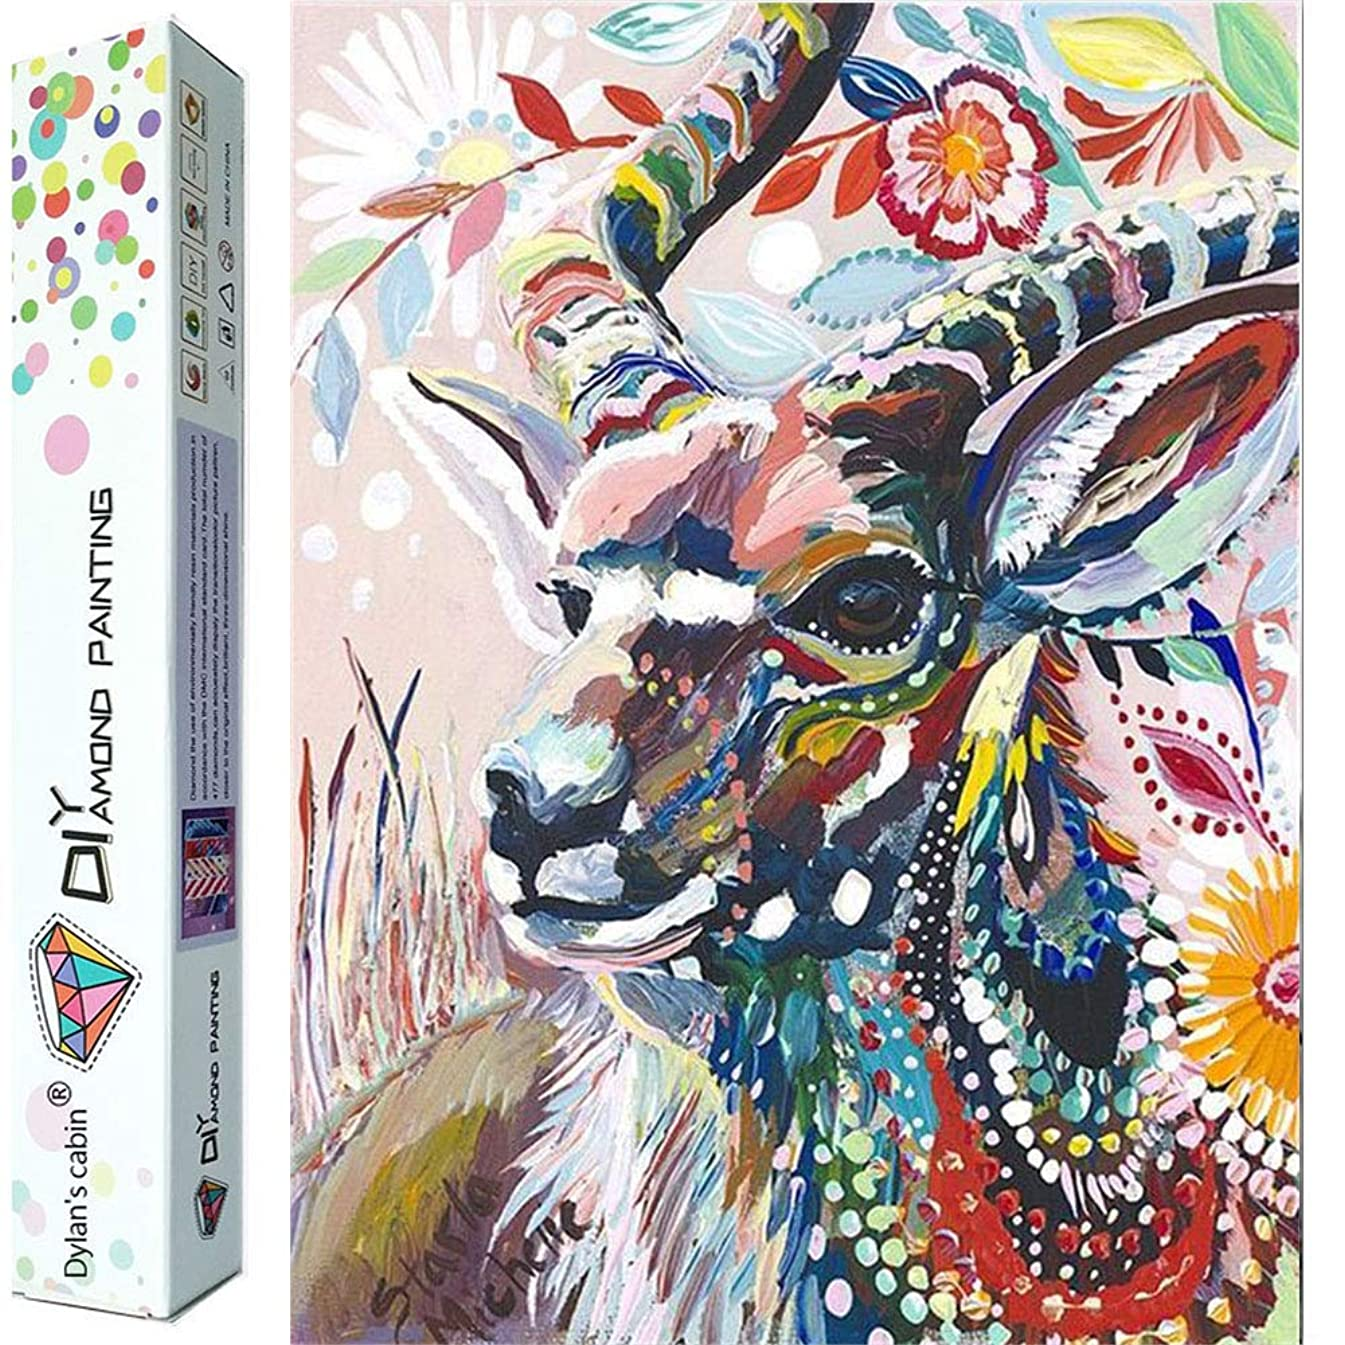 Dylan's Cabin DIY 5D Diamond Painting Kits for Adults,Full Drill Embroidery Paint with Diamond for Home Wall Decor(goat/12x16inch)